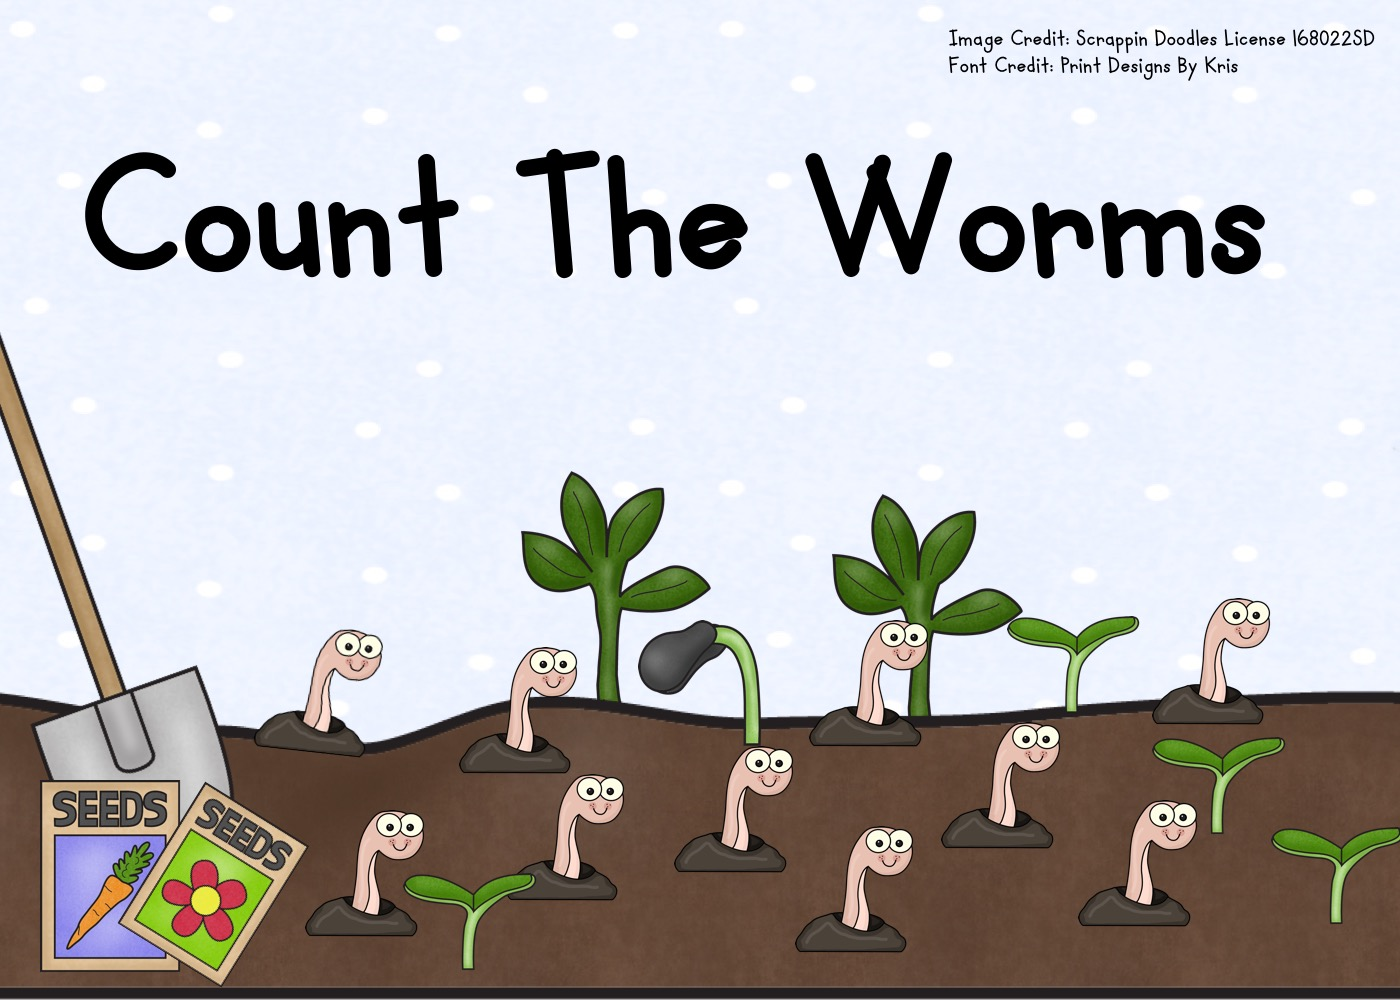 Fun Counting Printables for Preschool and Kindergarten | Spring Animal Themed Games | Hands On Math Homeschool Activities | Kids Classroom Center Ideas and Worksheets #FreePrintableWorksheetsForKids #worms #counting #clipcards #spring